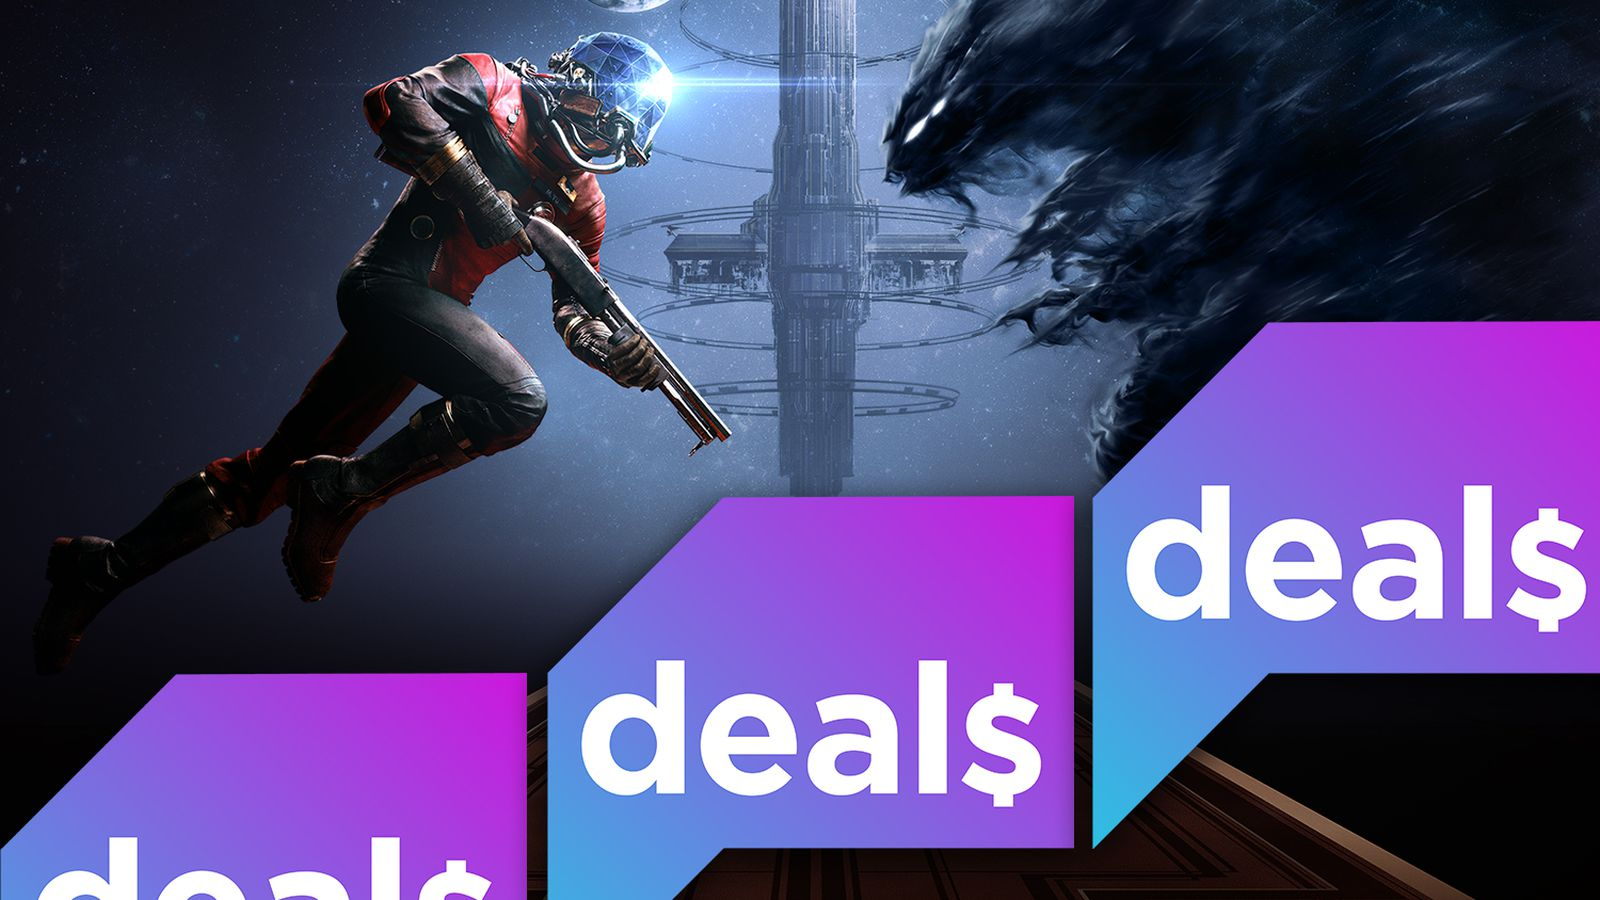 Xbox One S console discounts, $35 off Prey, and more of the best game deals